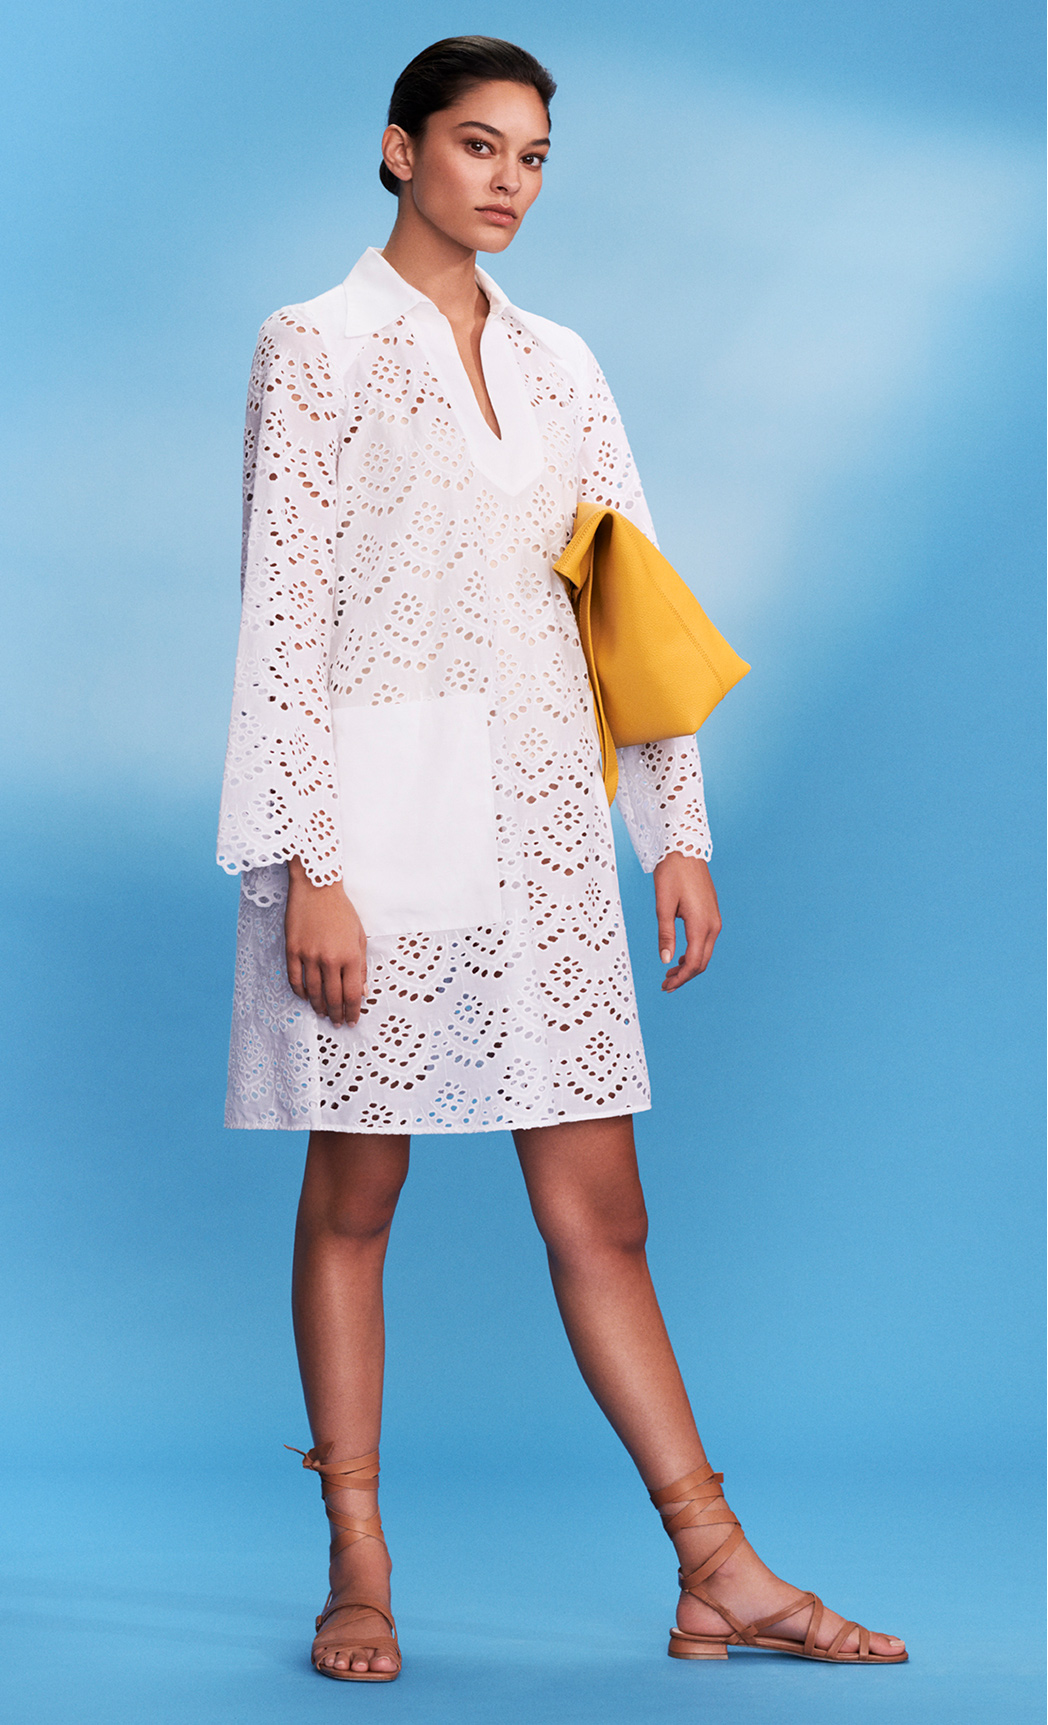 Model poses in white broaderie anglais shirt dresses styled with yellow bag and brown sandals